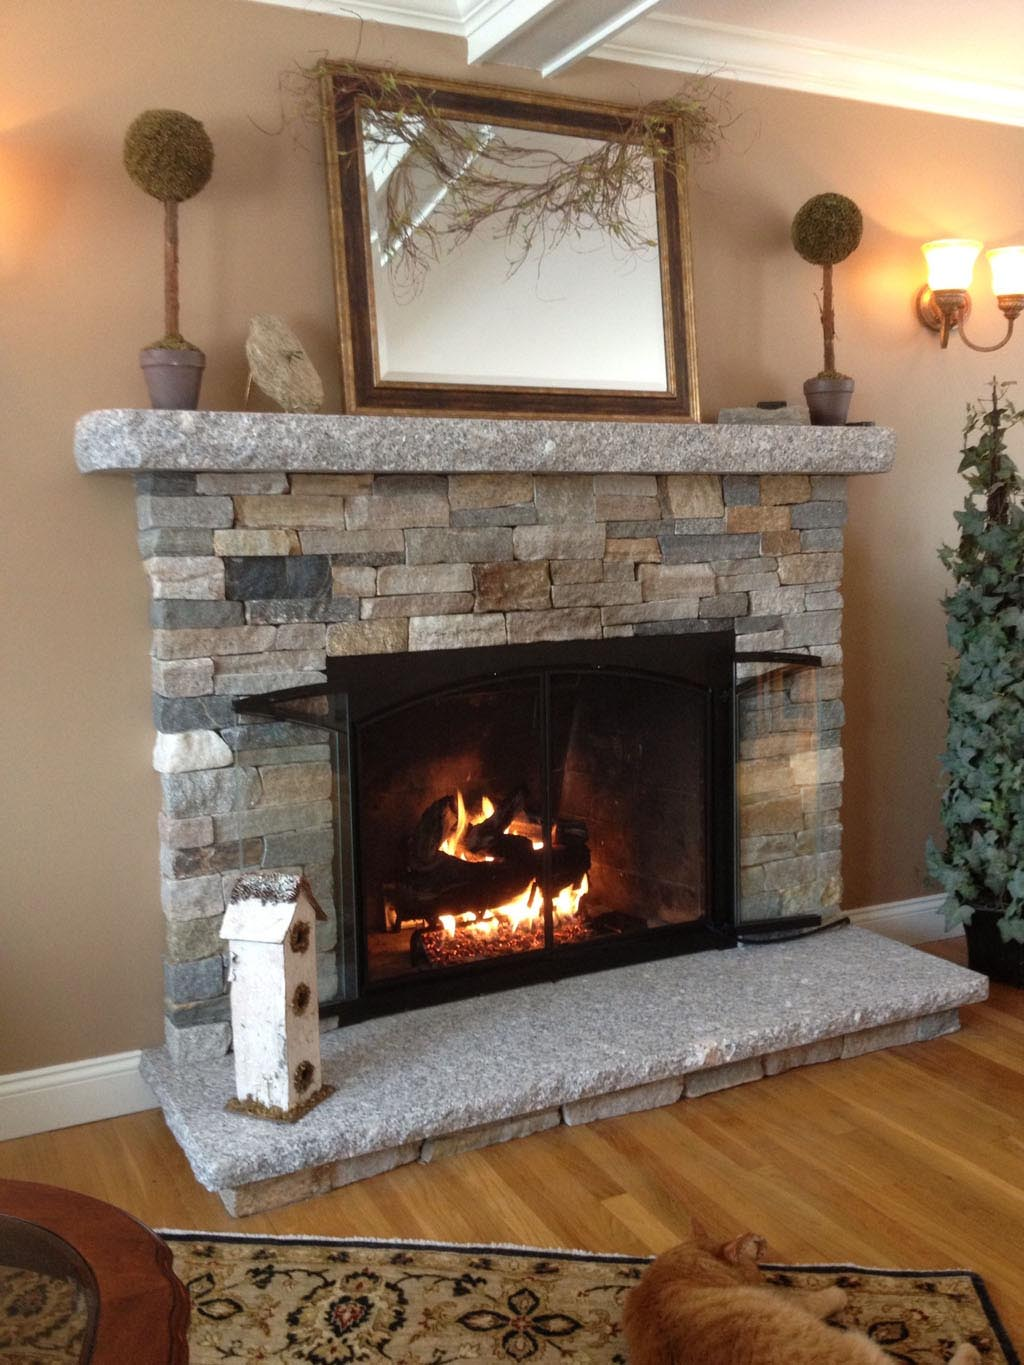 DIY Faux Fireplace Its Pros and Cons : DIY Faux Stone Fireplace. Diy faux stone fireplace. electric fireplace